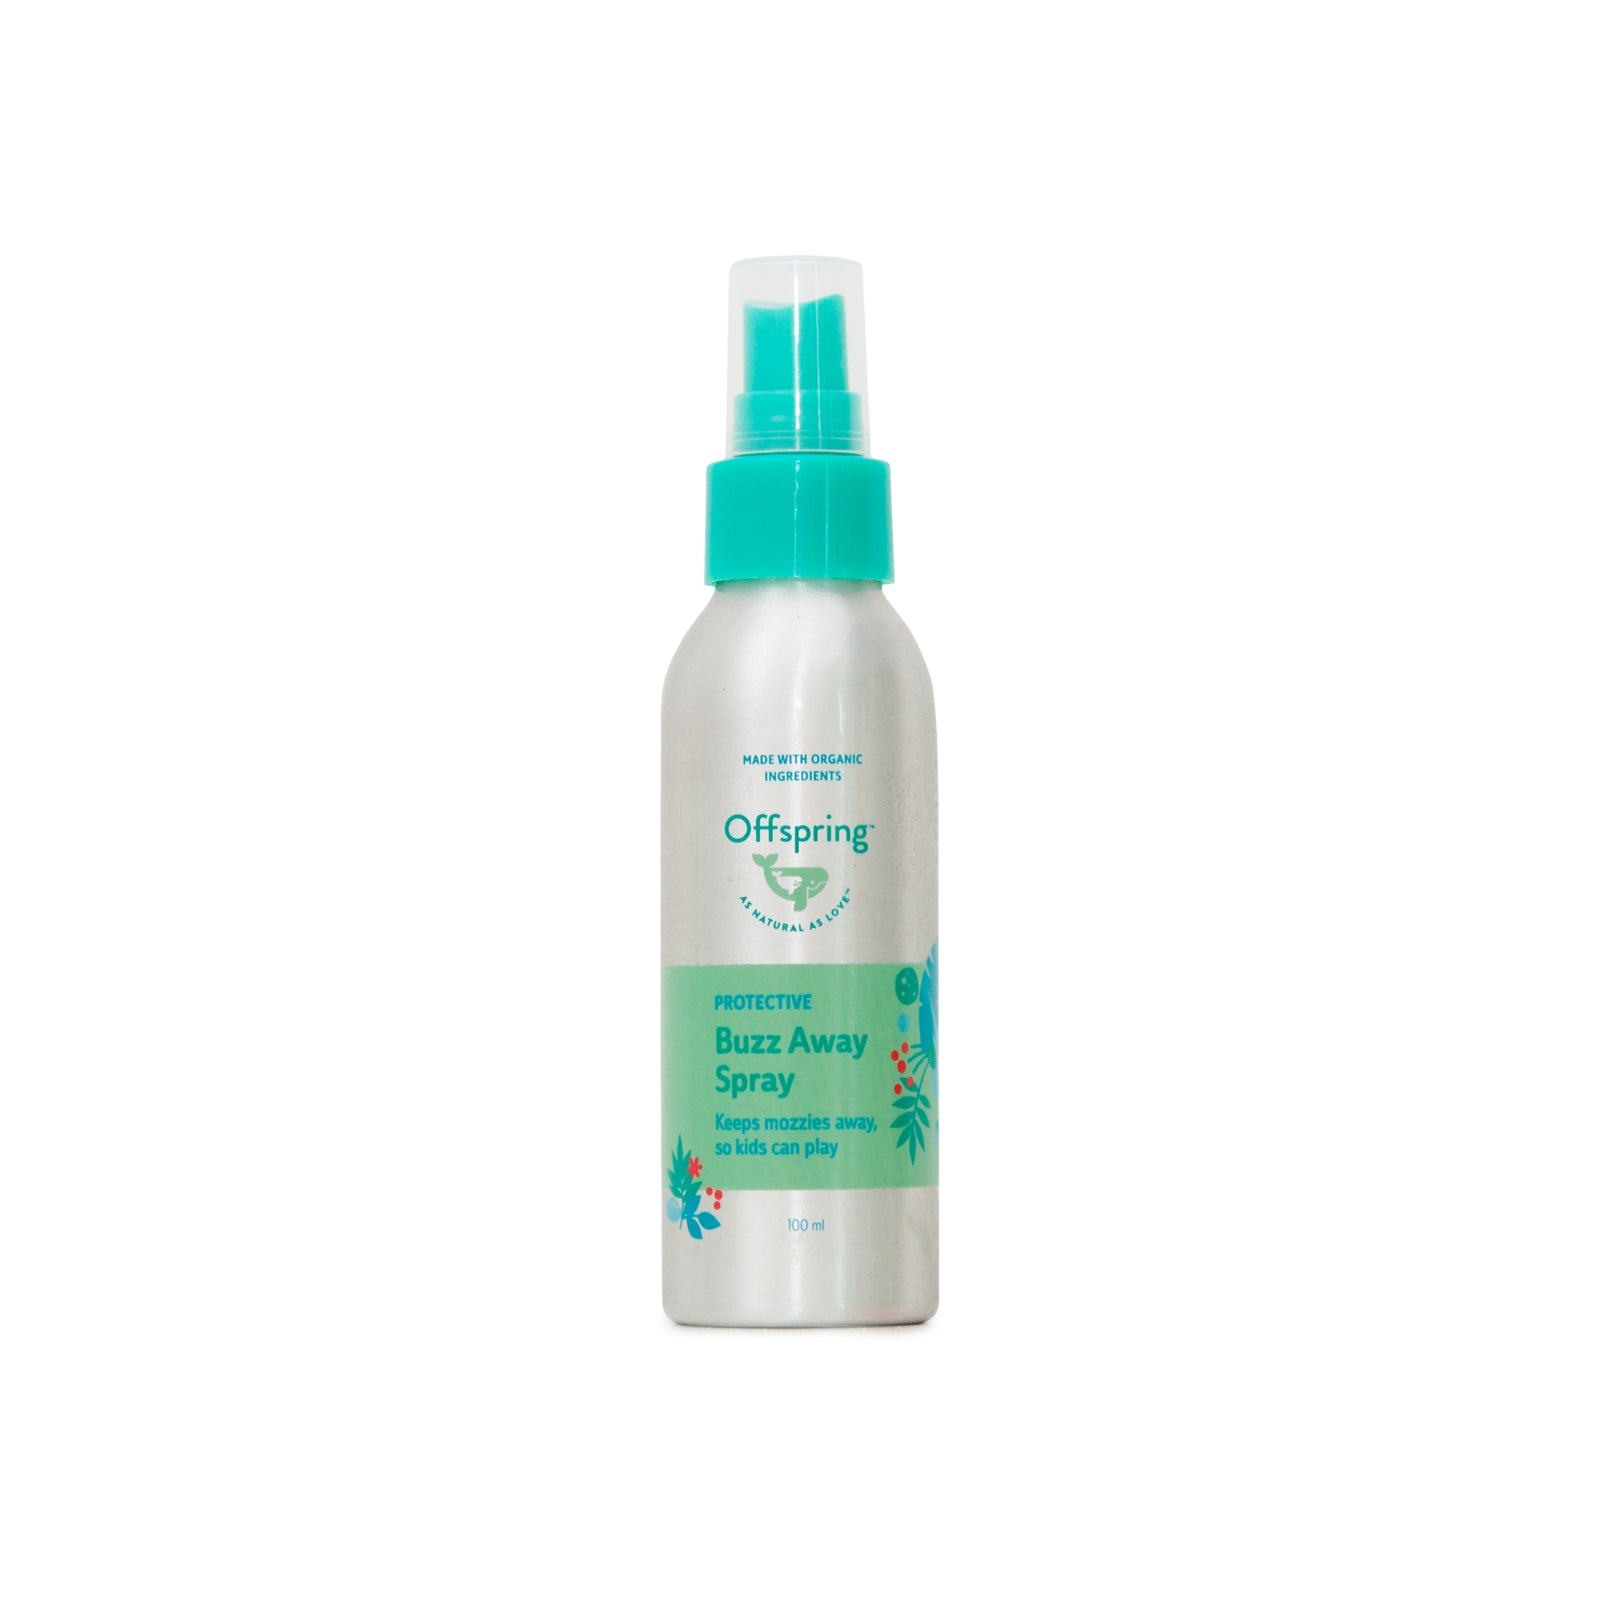 Offspring Protective Buzz Away Spray